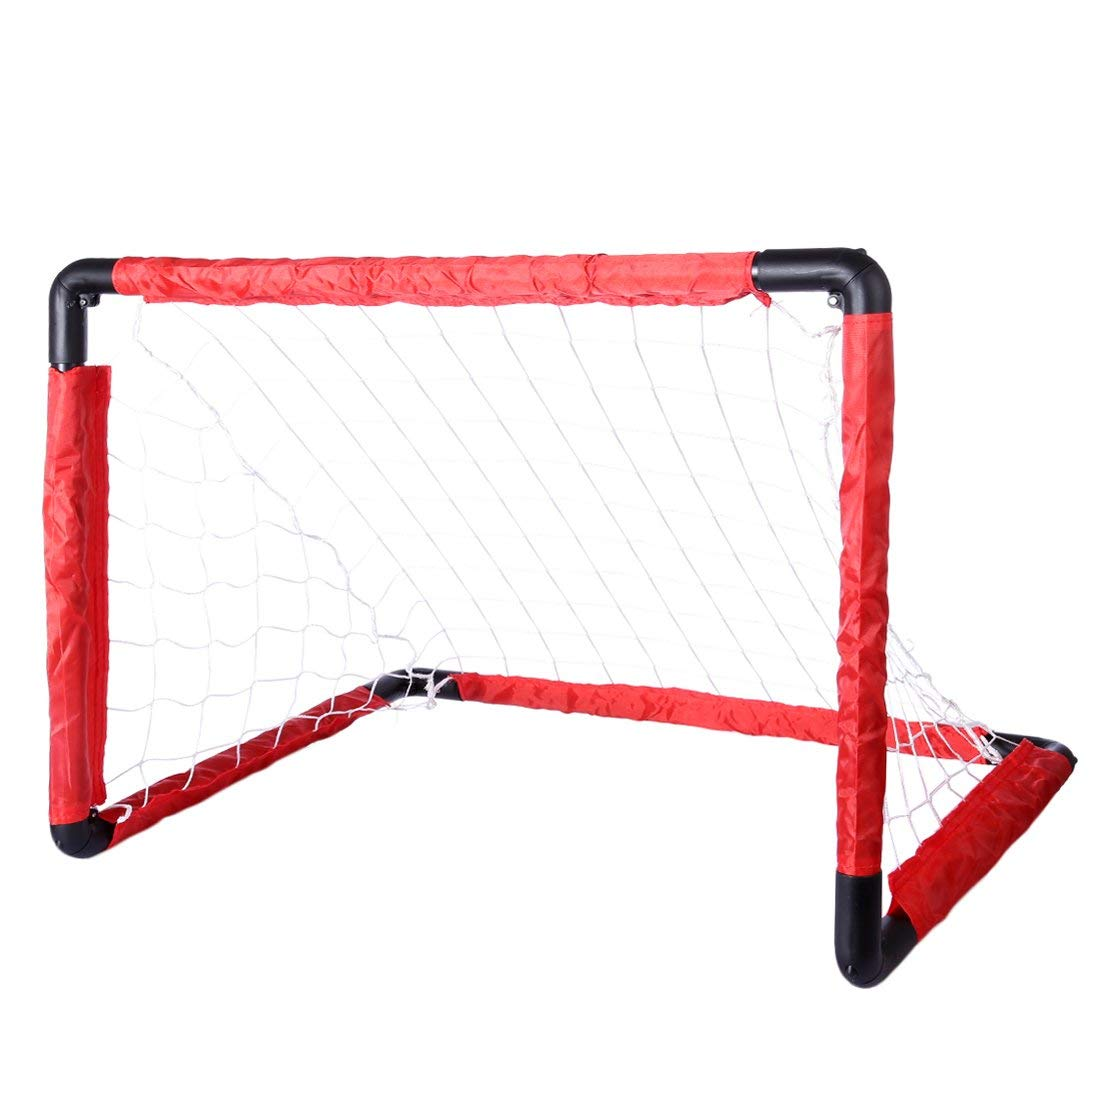 RuiyiF Kids Soccer Goal and Ball Set, Soccer Goal Net Toddler Portable for Backyard Indoor Outdoor -Small